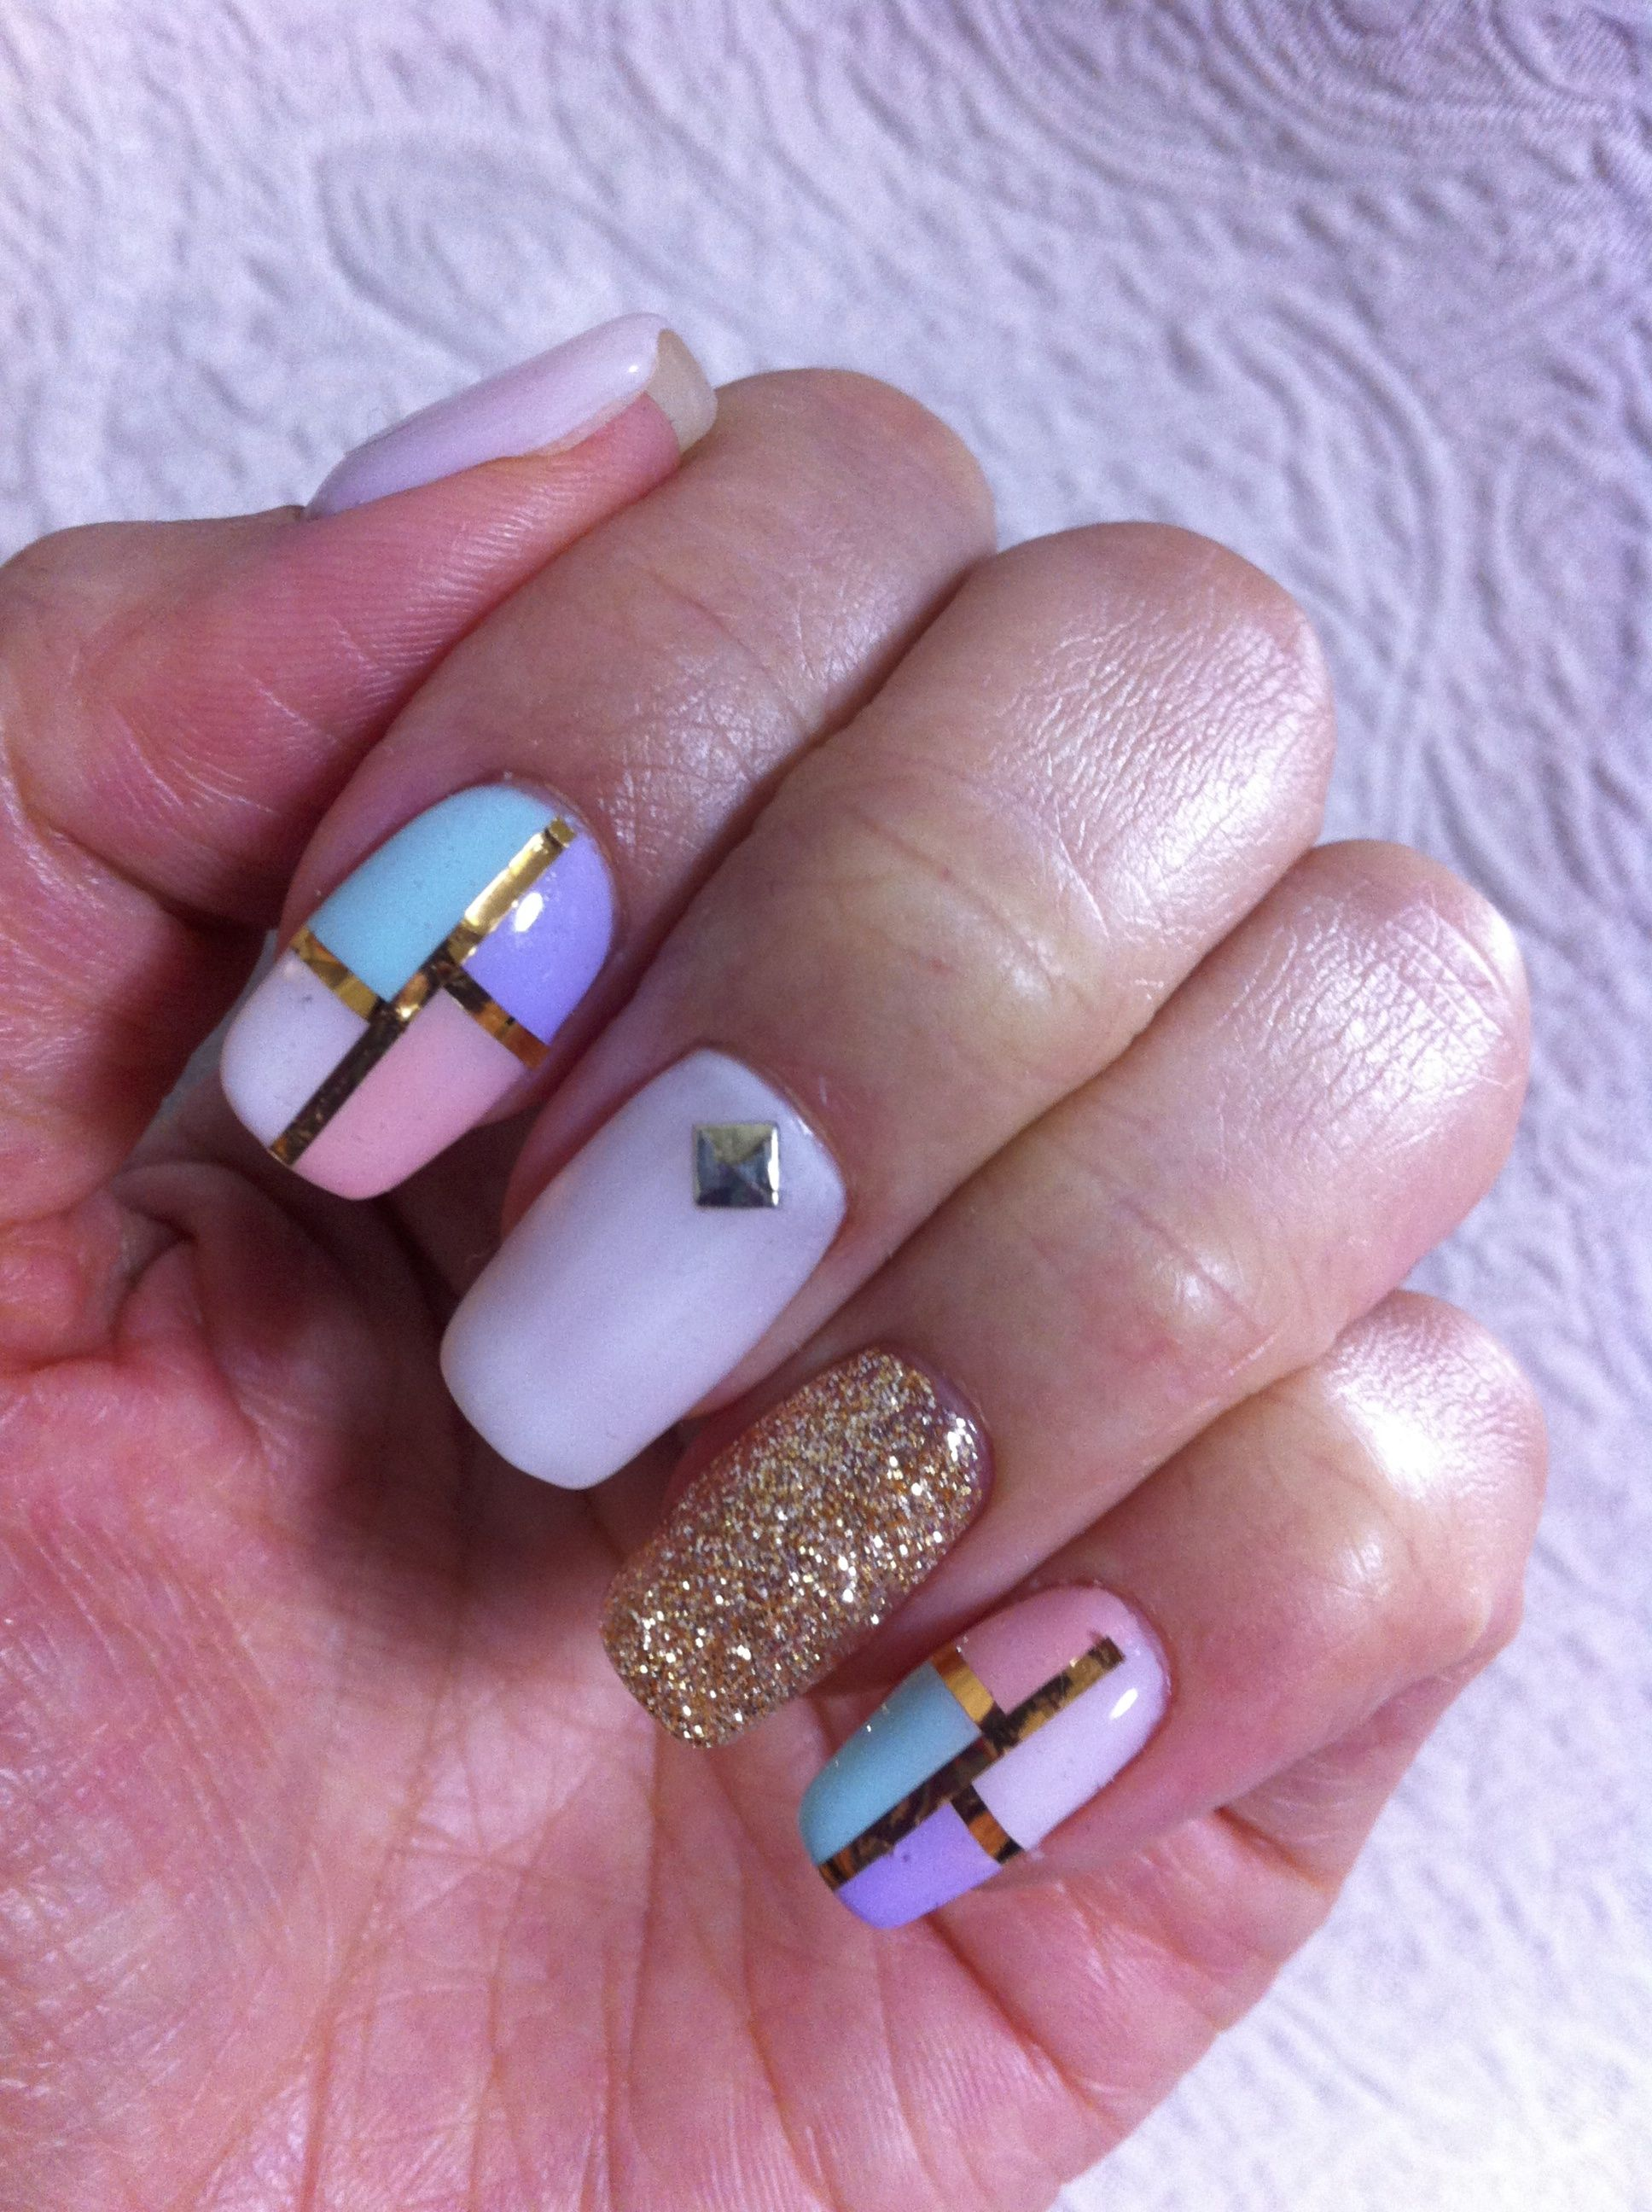 #gelnail #block #white #gold #pink #purple #green #glitter #JPN